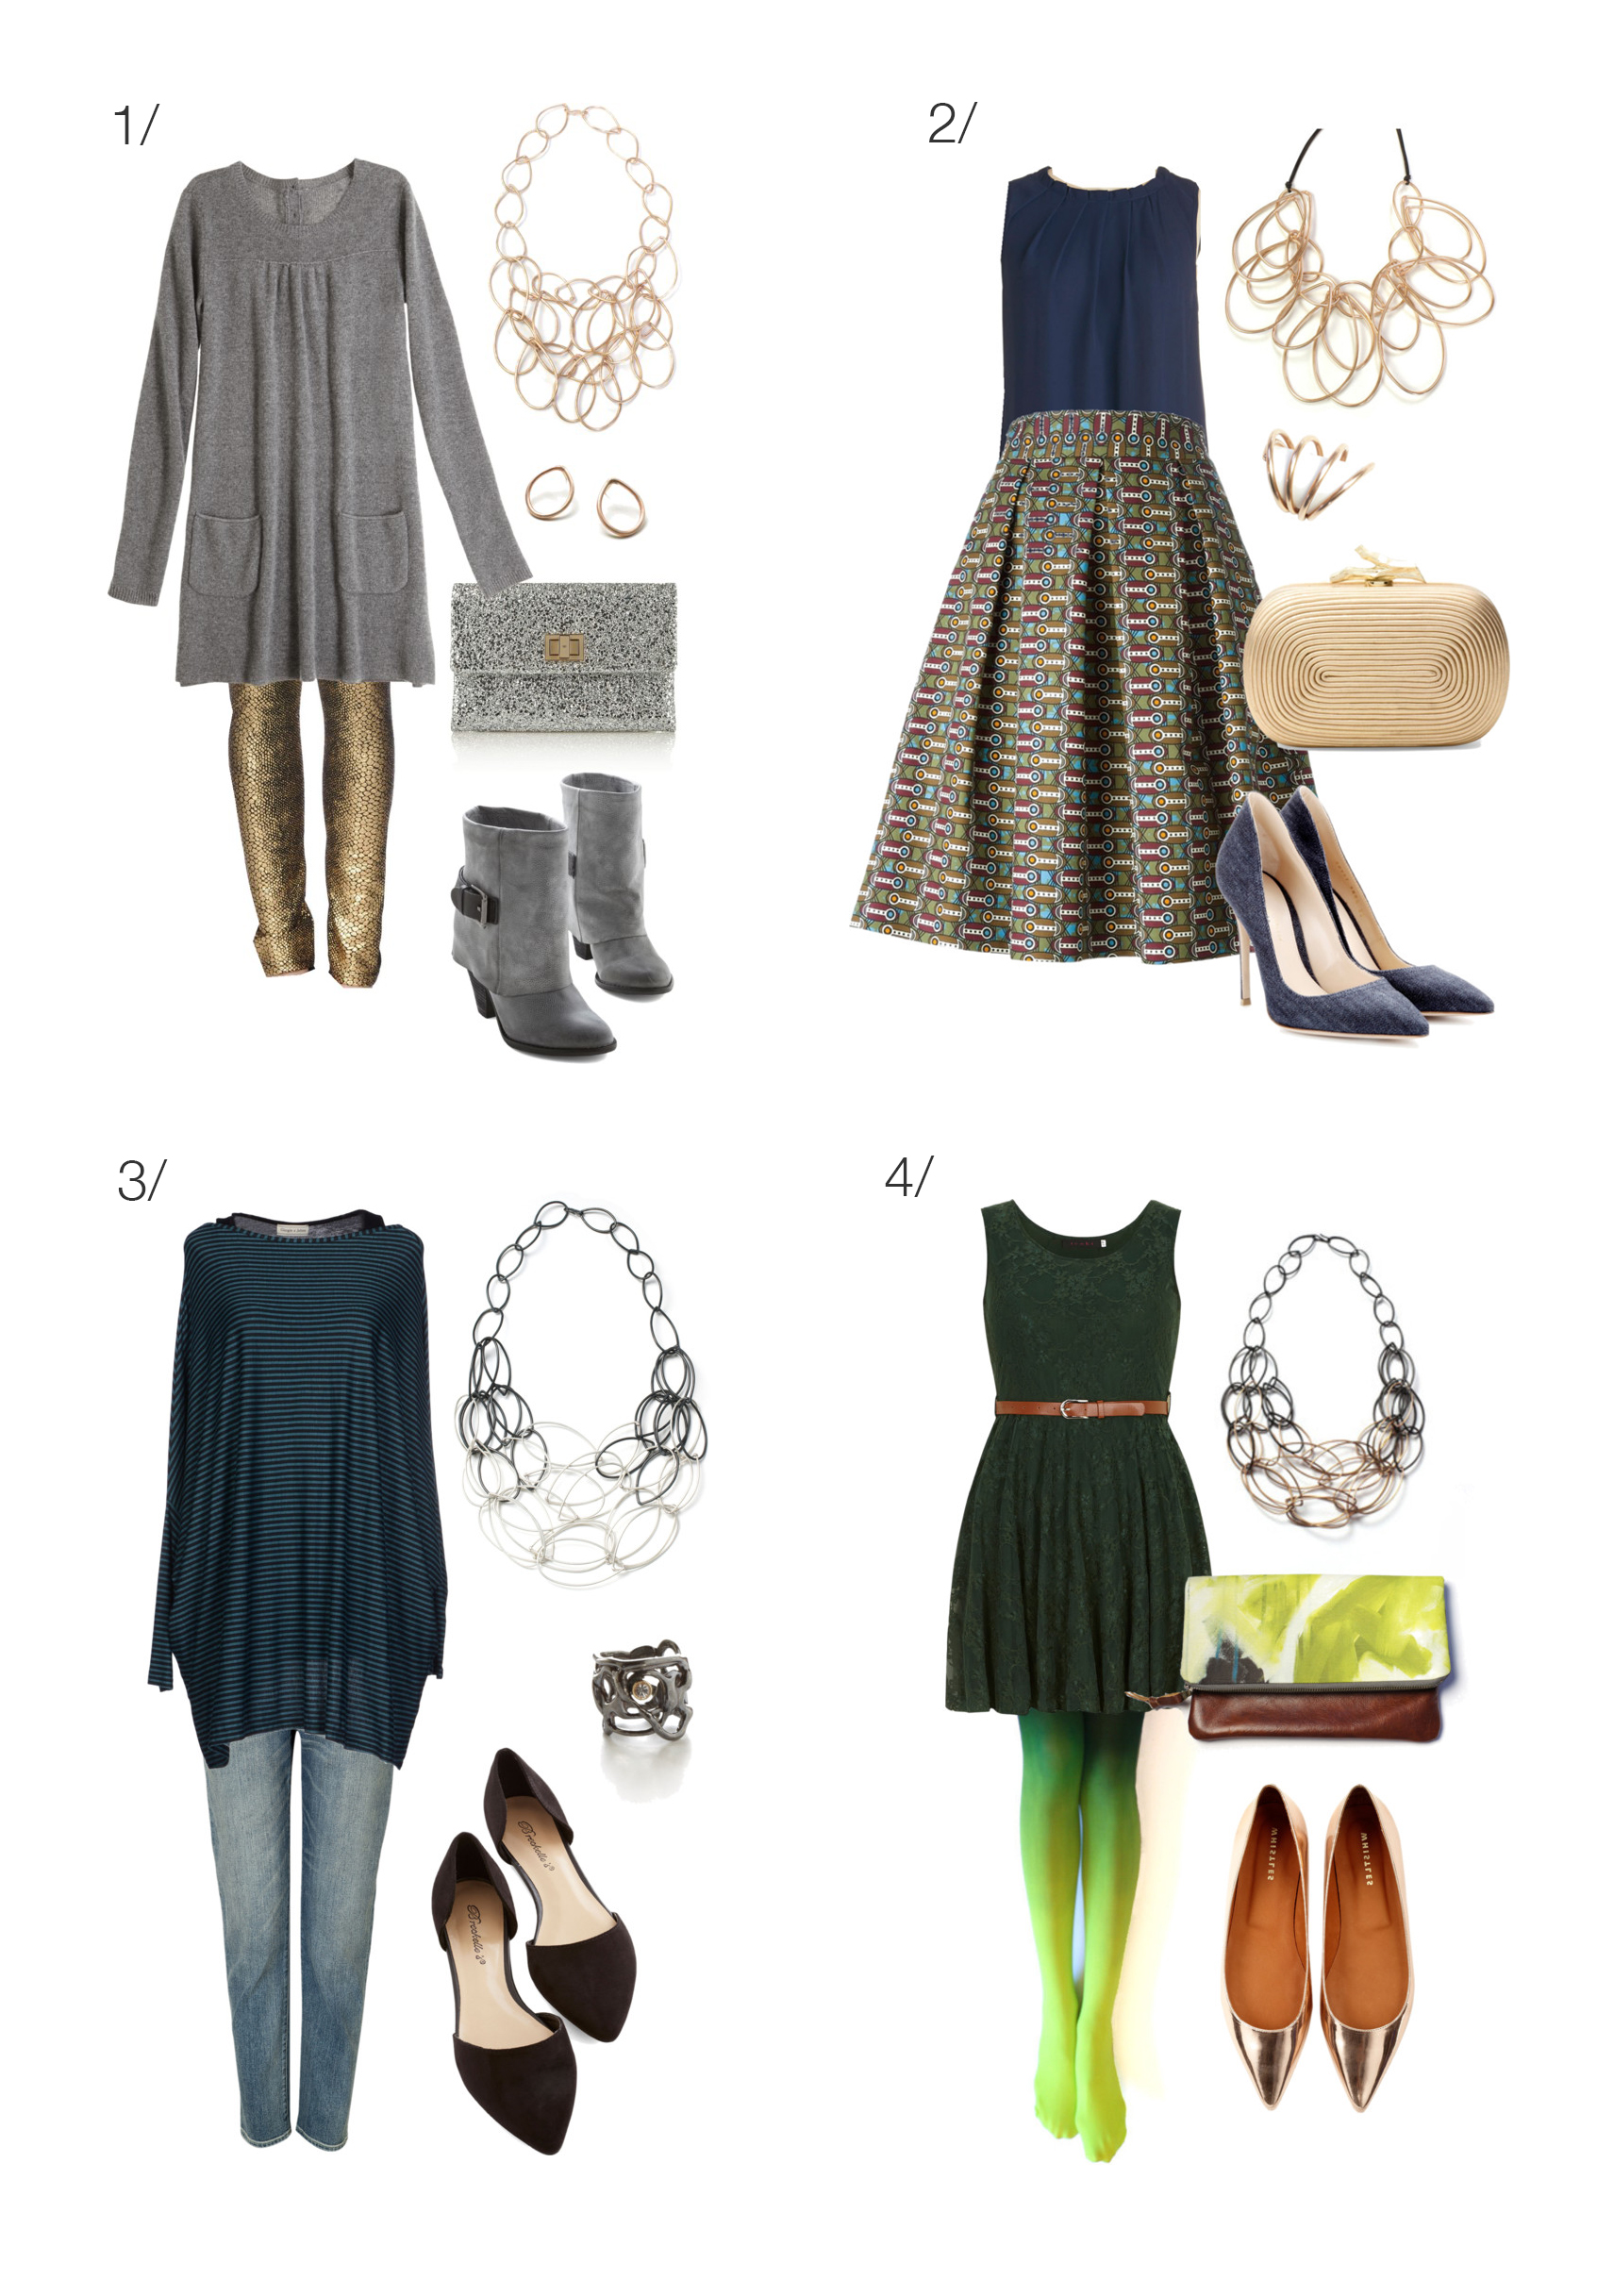 eight outfit ideas for your next holiday party // Click for outfit details.